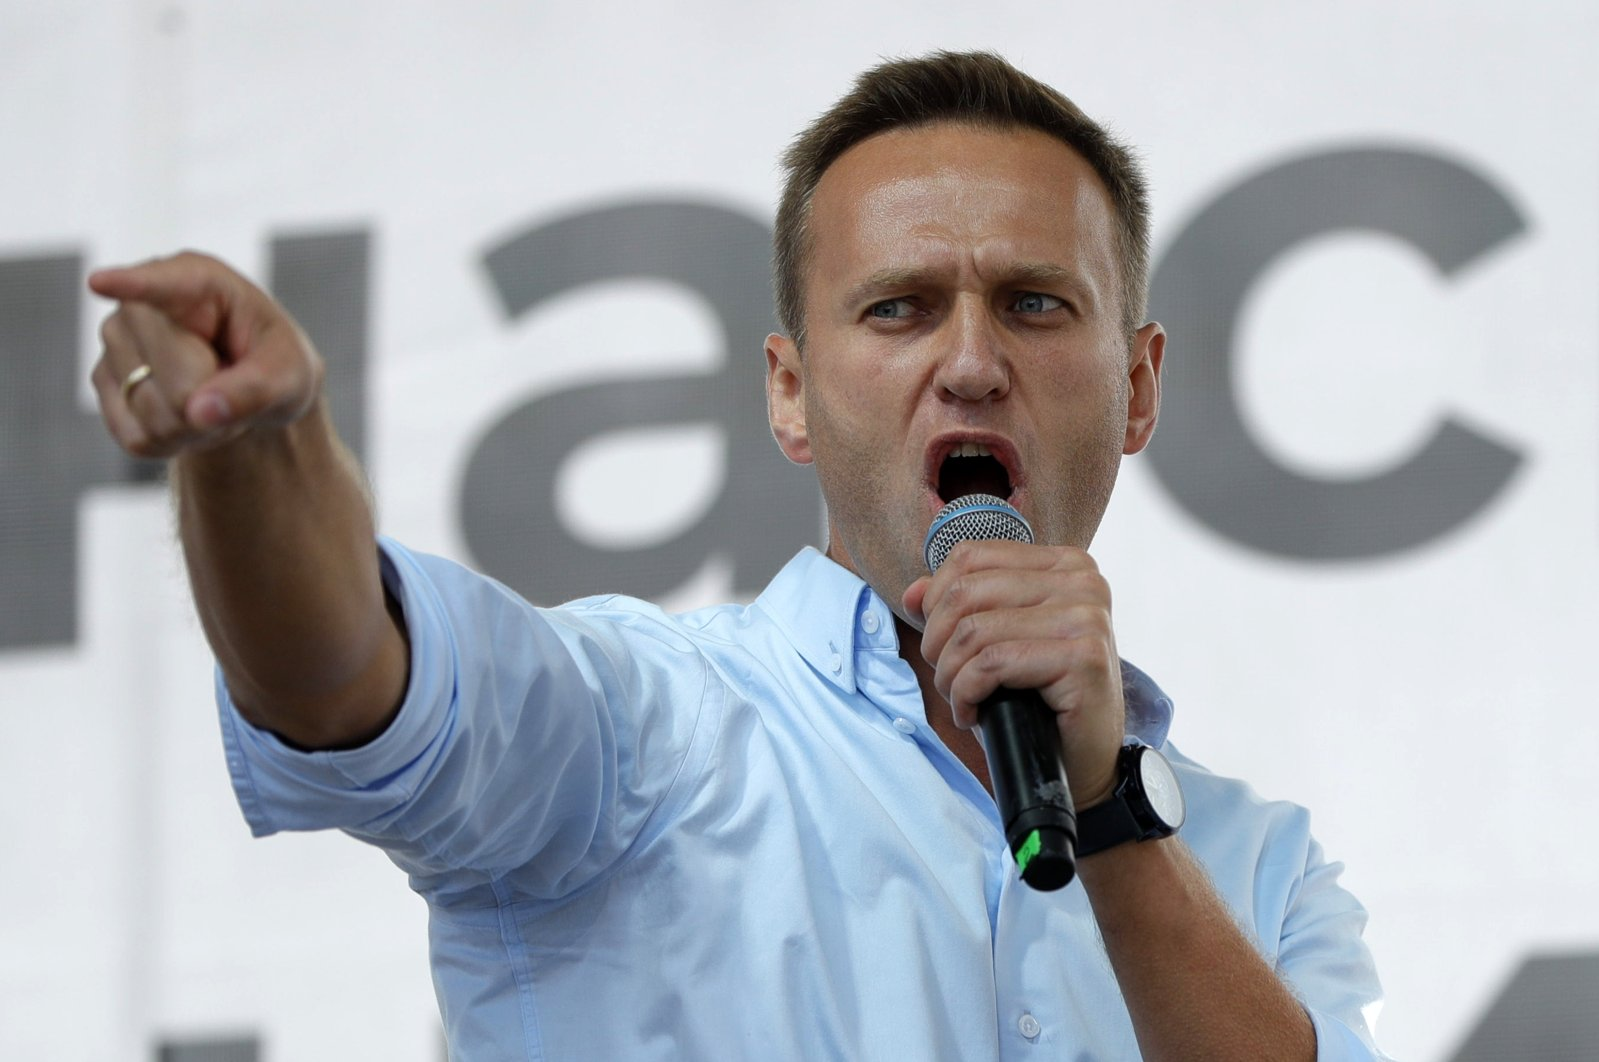 In this Saturday, July 20, 2019 file photo Russian opposition activist Alexei Navalny gestures while speaking to a crowd during a political protest in Moscow, Russia. (AP Photo)